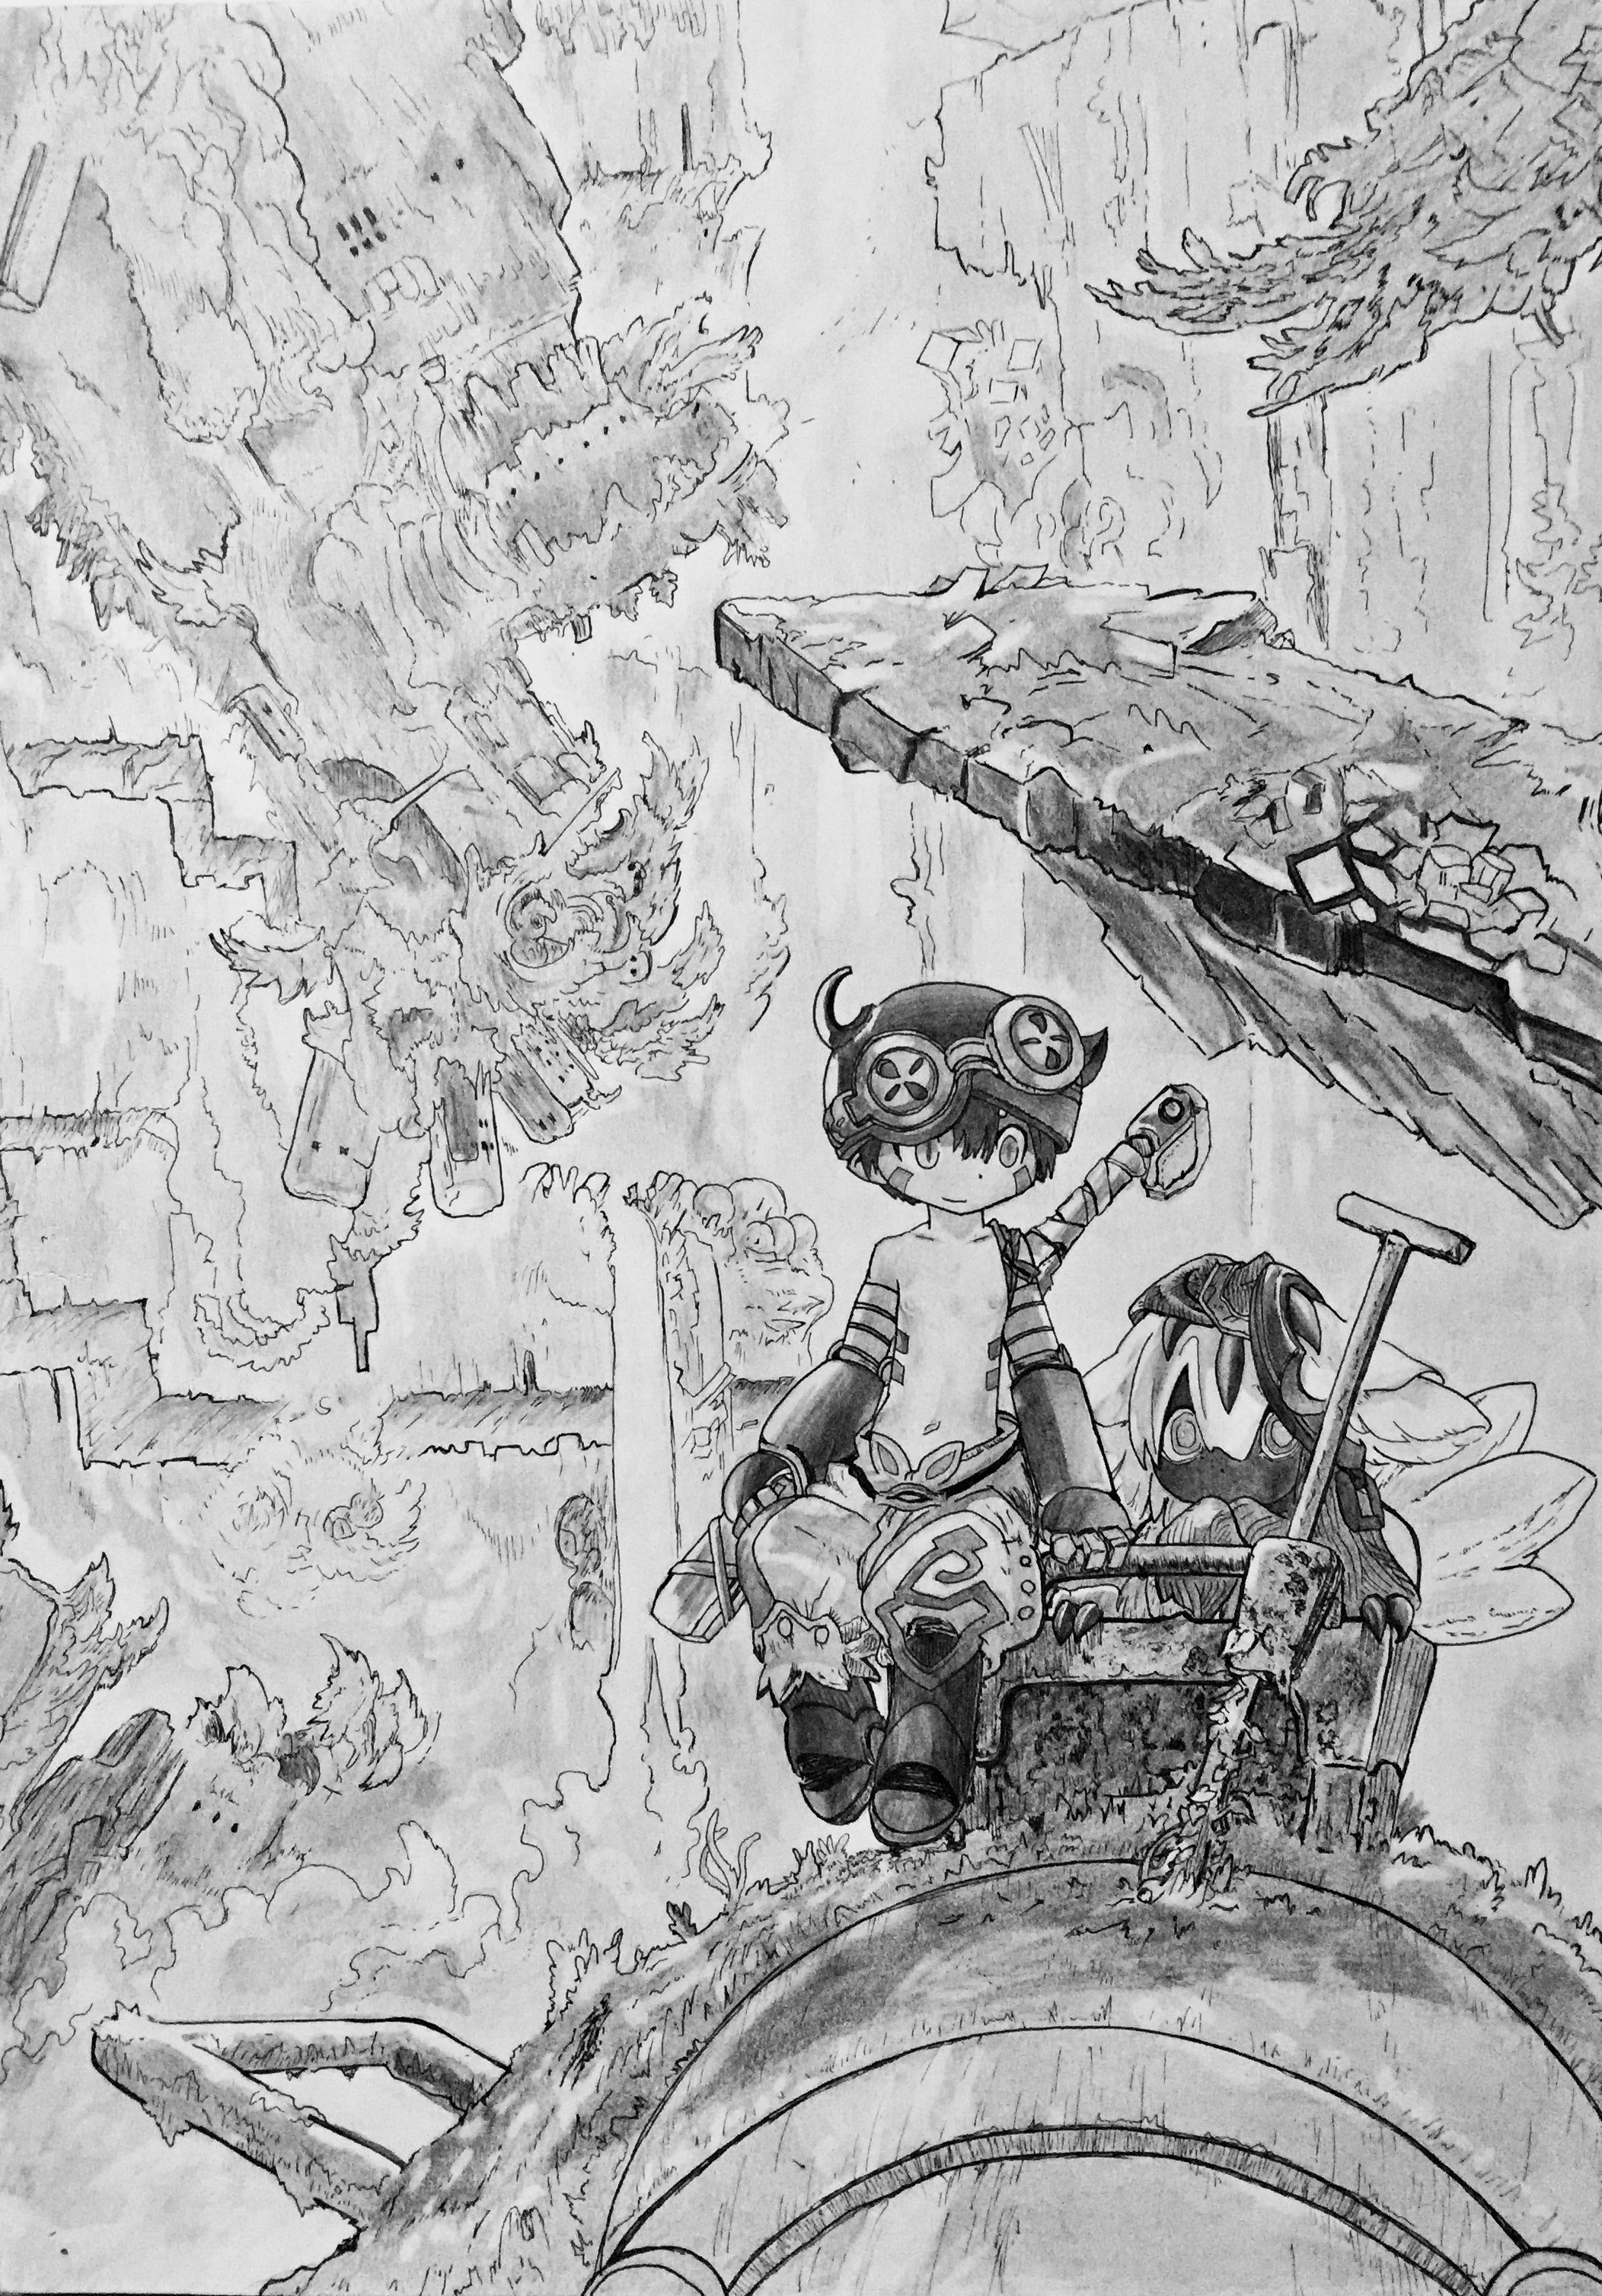 Wallpapers Art - Pencil Manga - Mix Made in Abyss